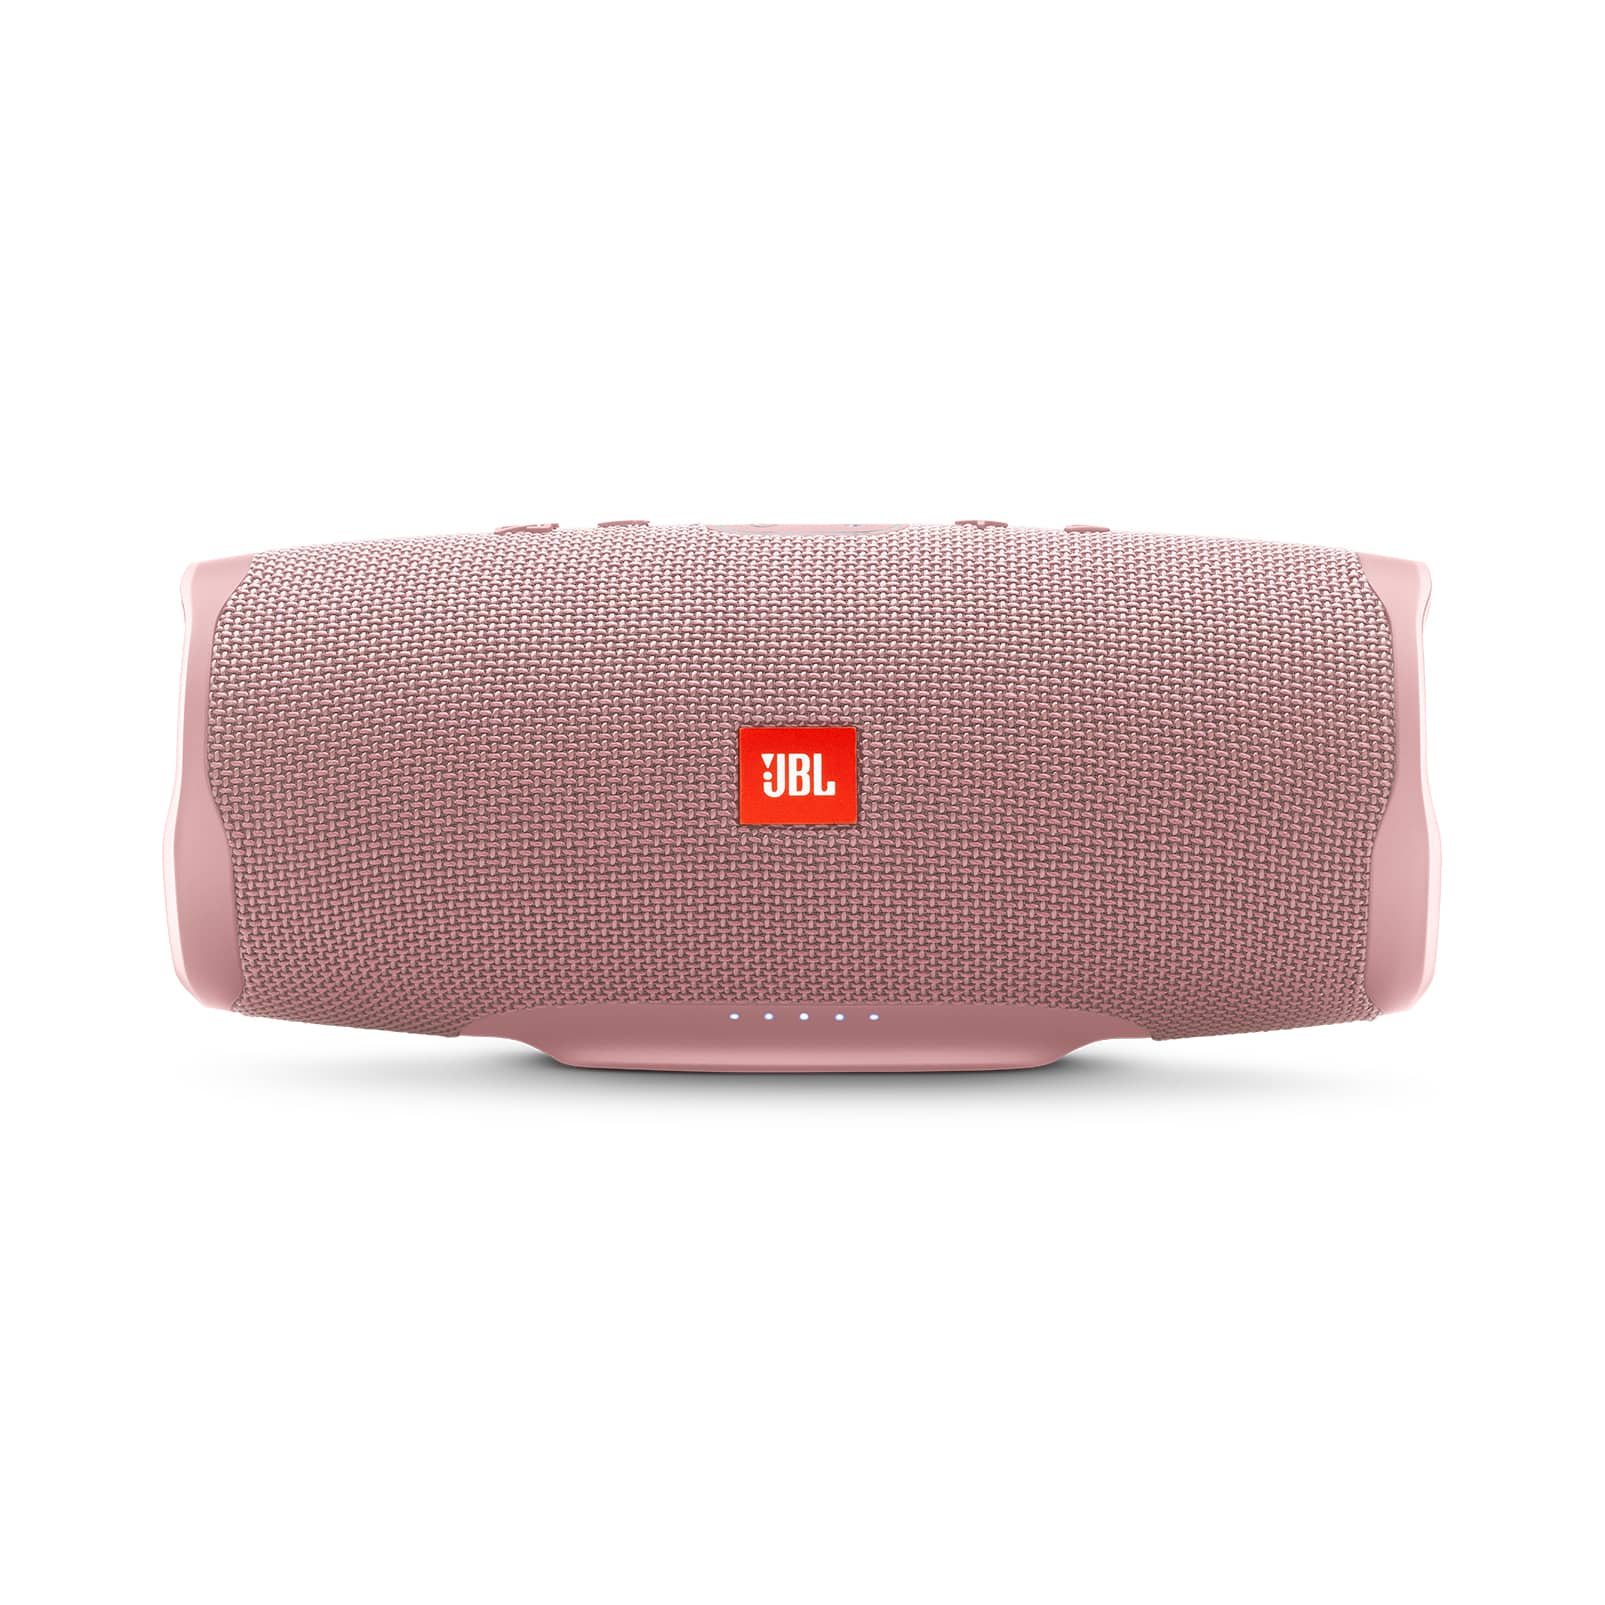 JBL Charge 4 kabelloser Bluetooth-Lautsprecher High-End-Stereo-Sound IPX7 für 129,00 Euro